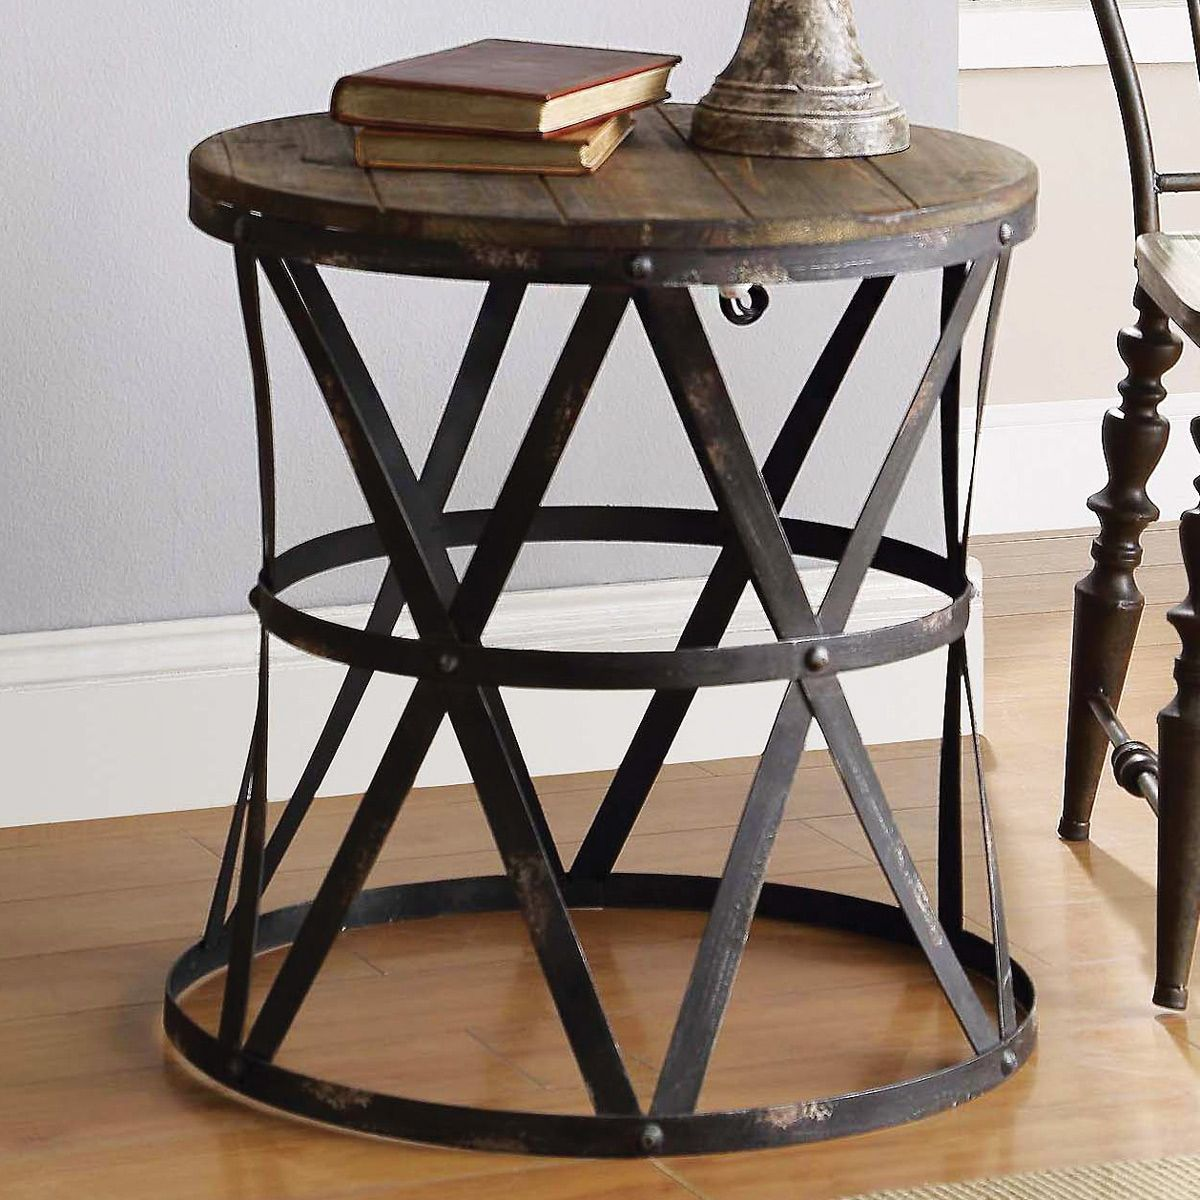 Rustic Coffee Tables And Rustic End Tables Black Forest Decor